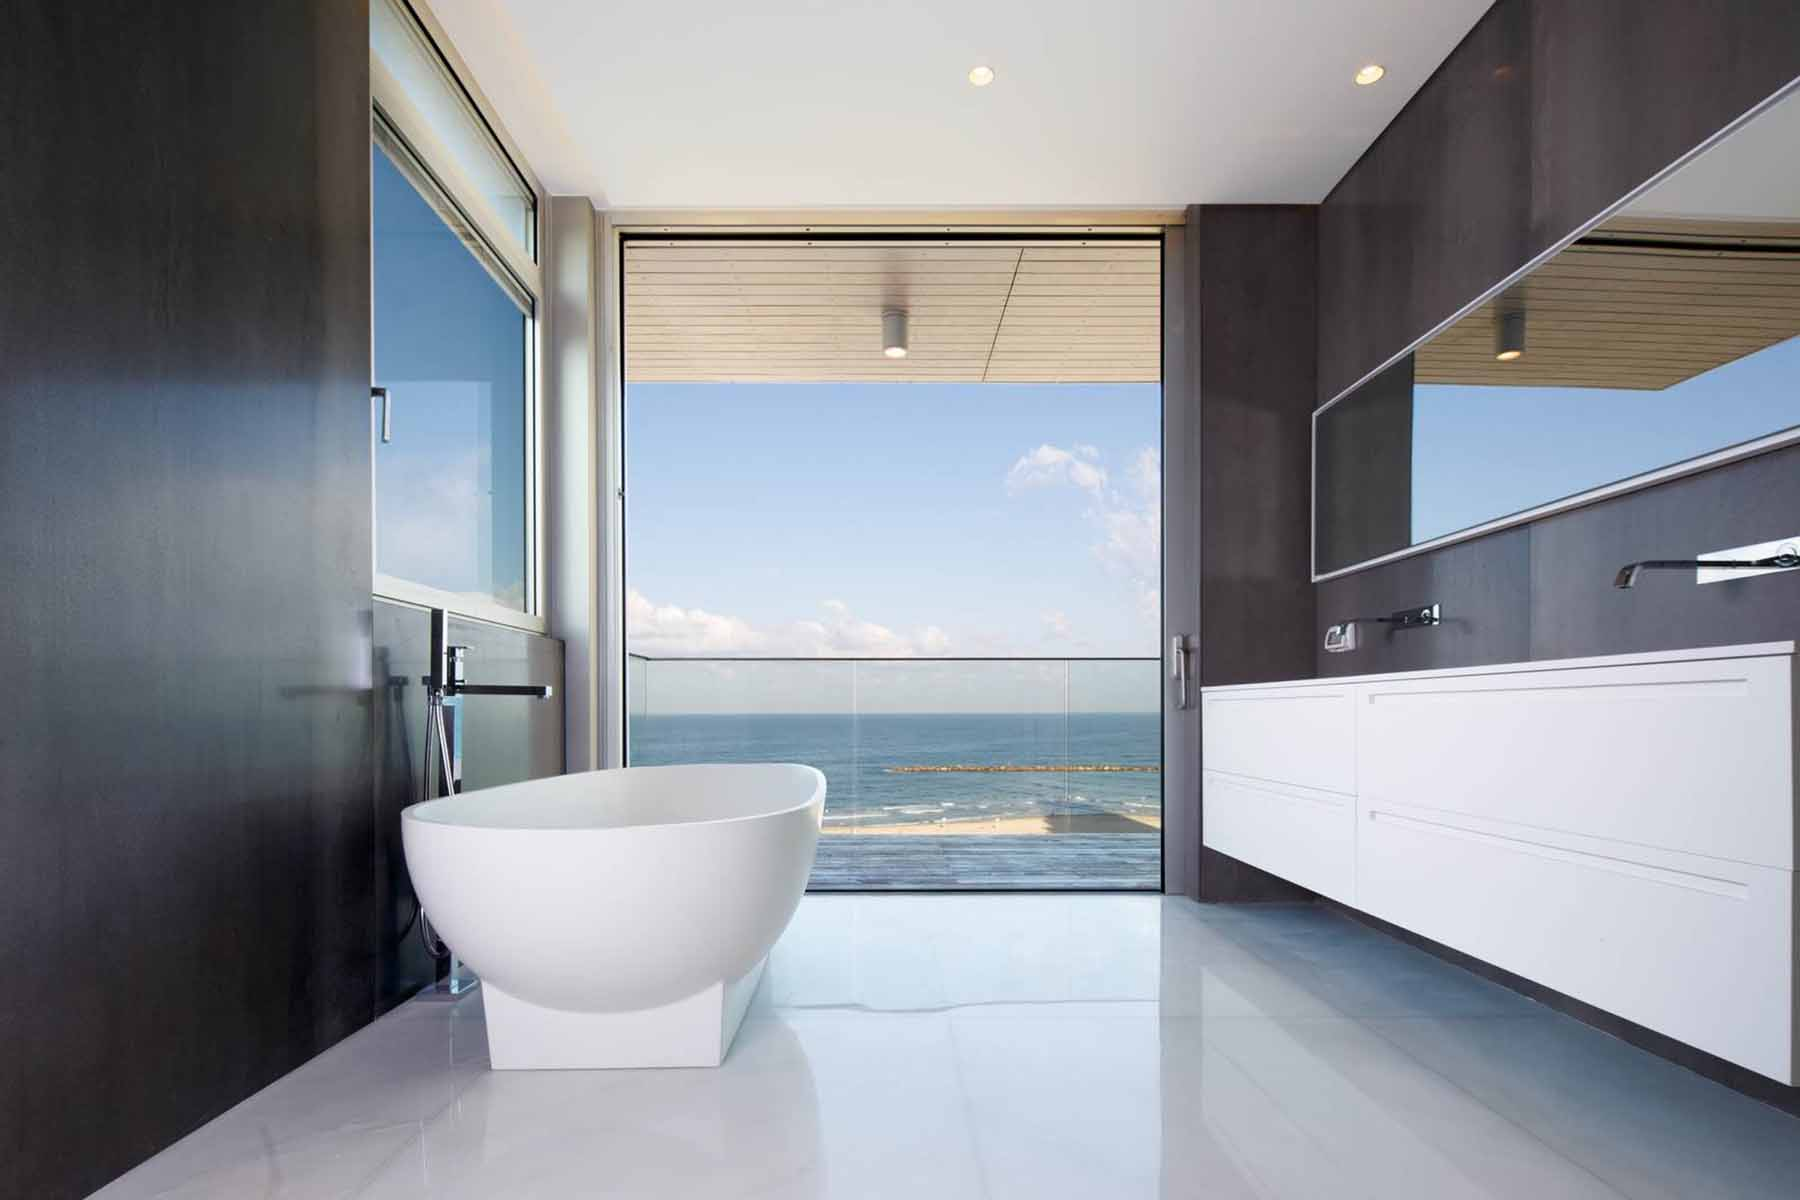 Additional photo for property listing at Beachfront Penthouse Duplex  Tel Aviv, Israel 61031 Israel